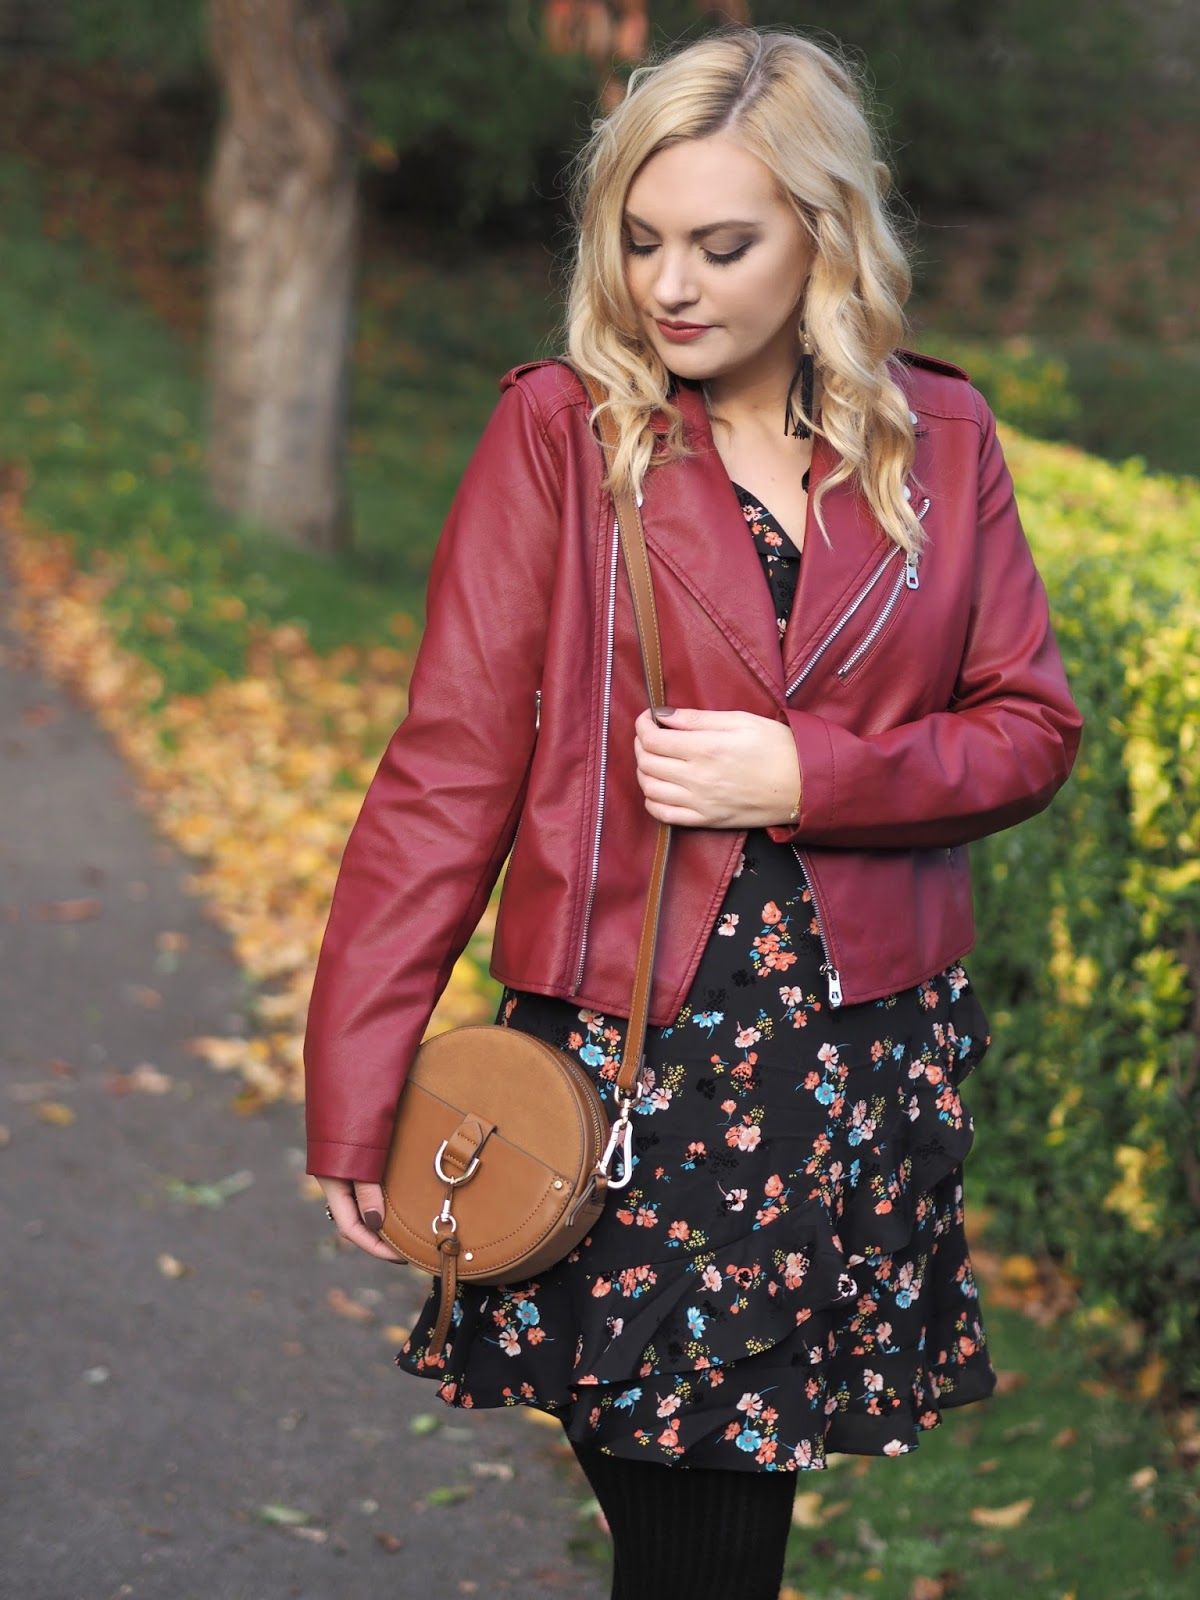 The Perfect Winter Dress That Makes Me Feel Body Confident, Katie Kirk Loves, Oasis Fashion, UK Fashion Blogger, Fashion Influencer, Style Blogger, Style Influencer, UK Style Blog, Personal Style Blog, Body Confidence Fashion, Feeling Body Confident